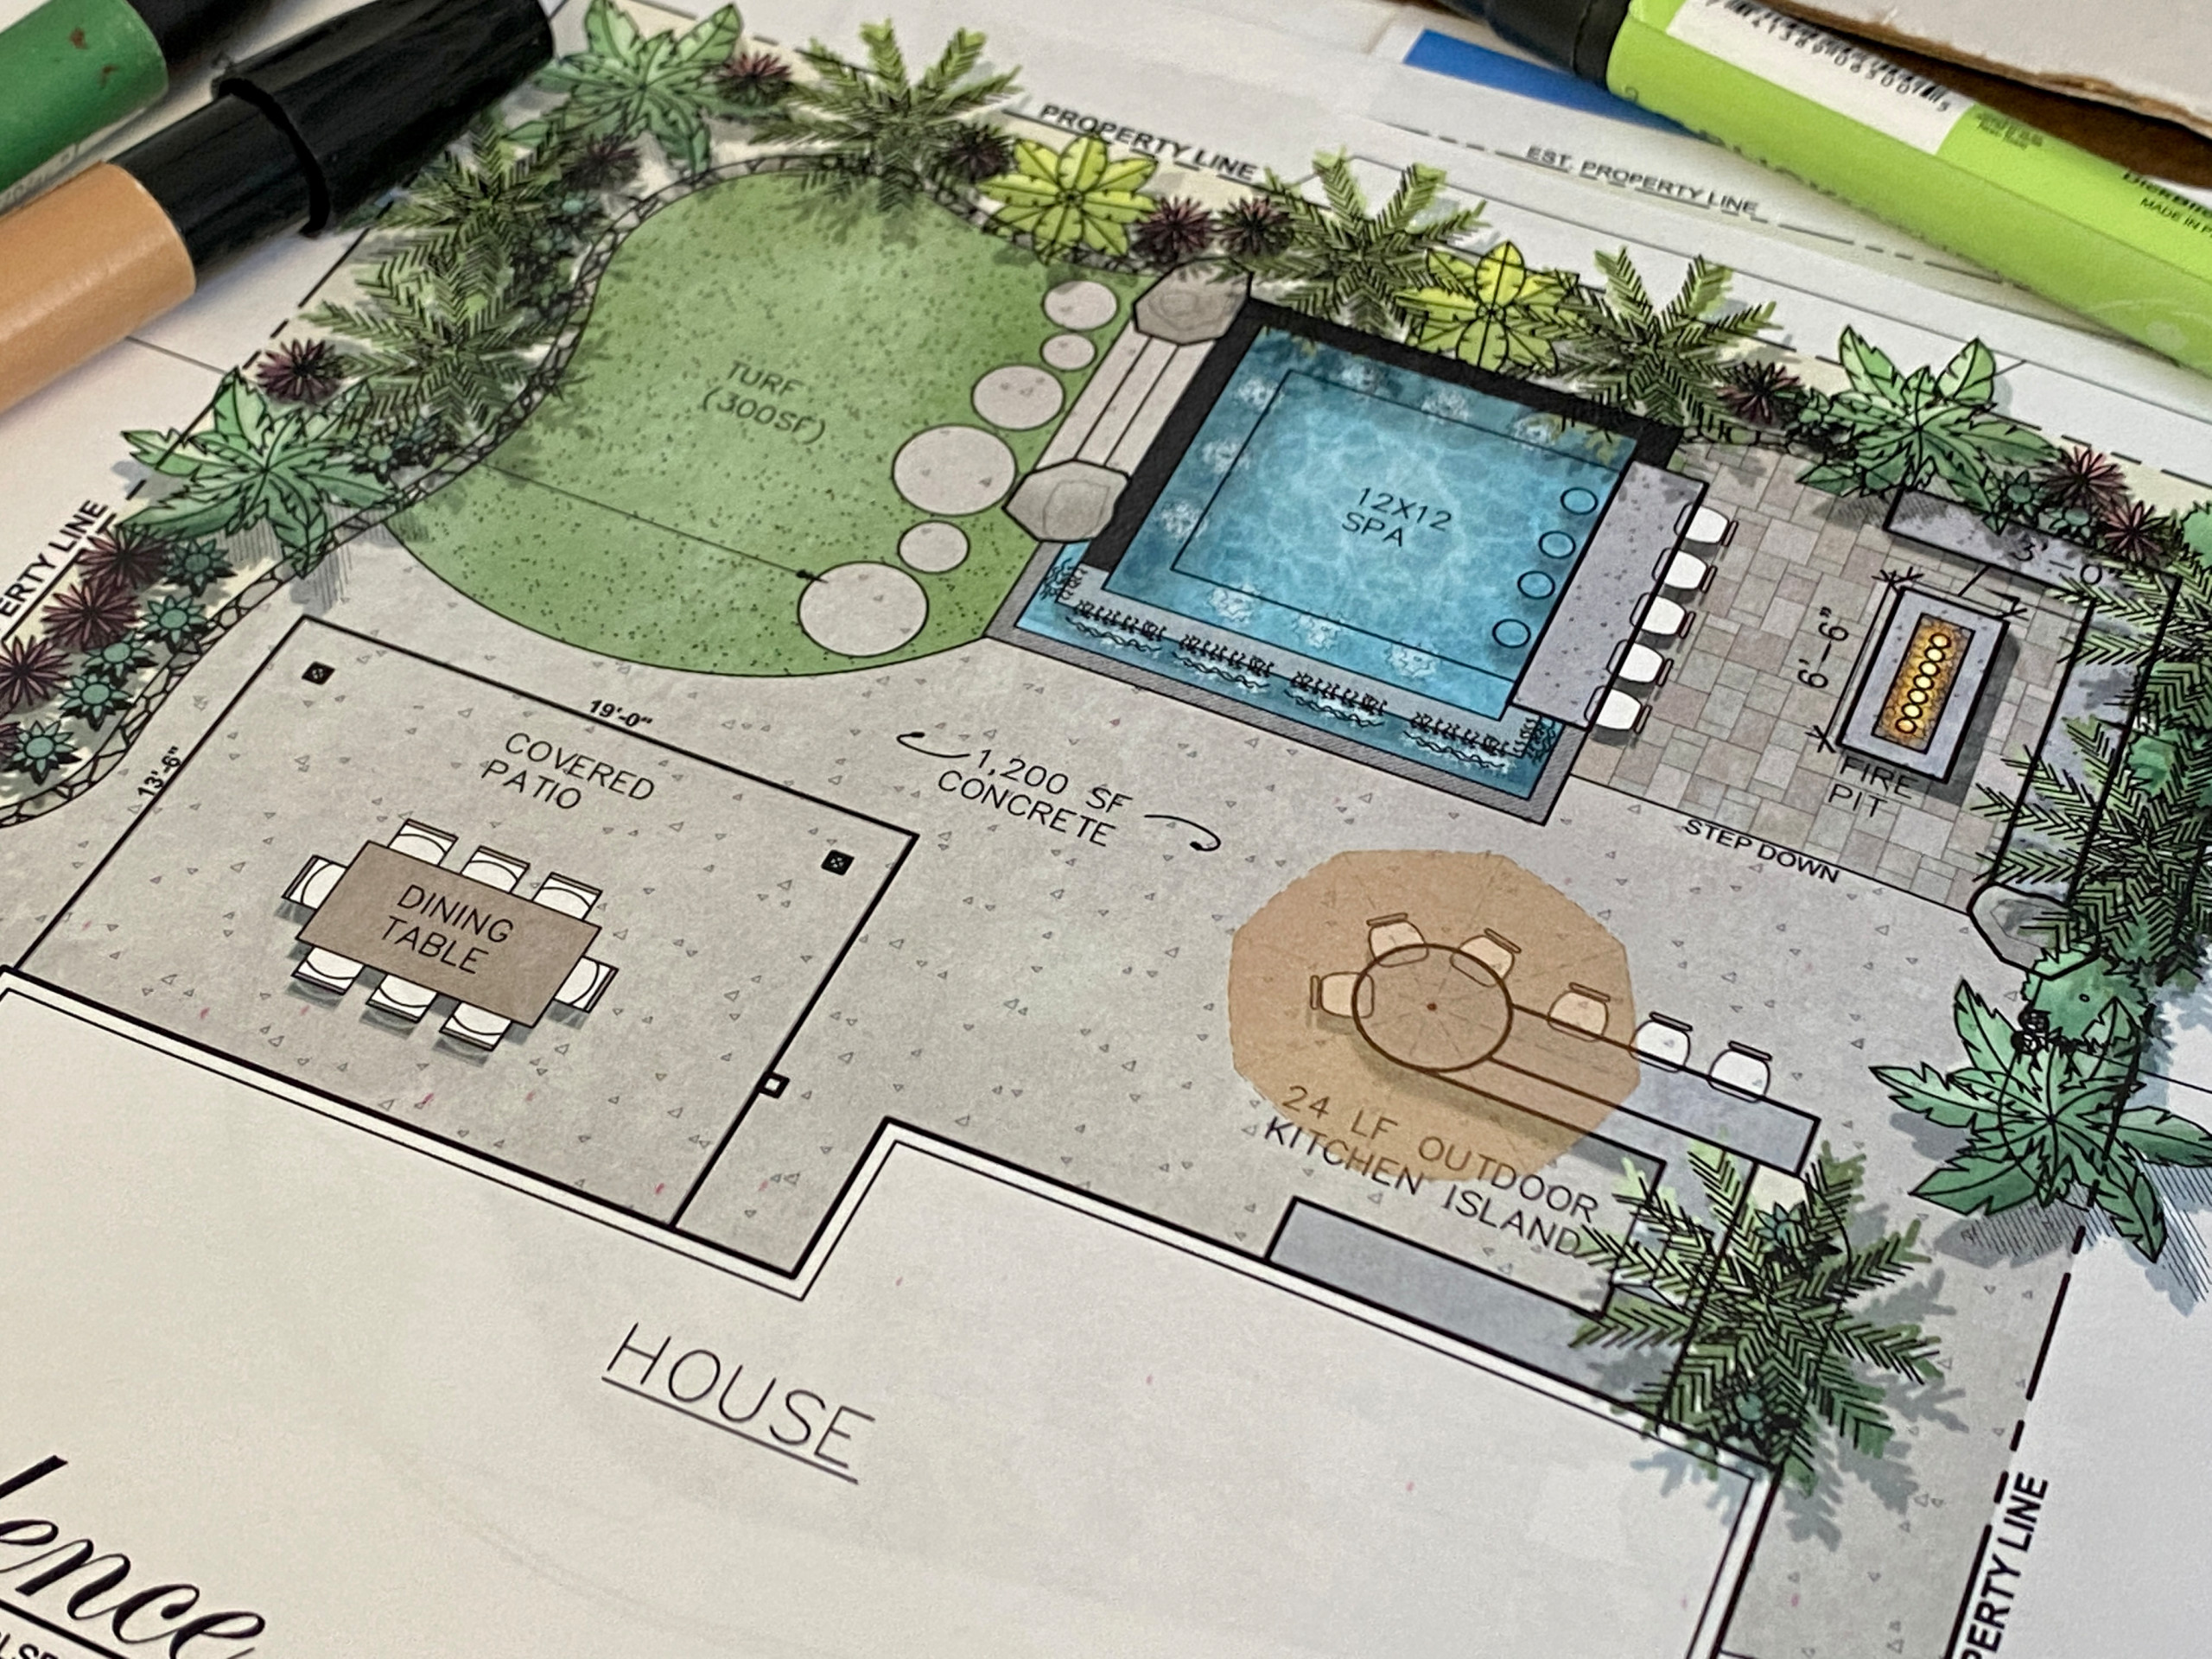 New Pool and Spa Design